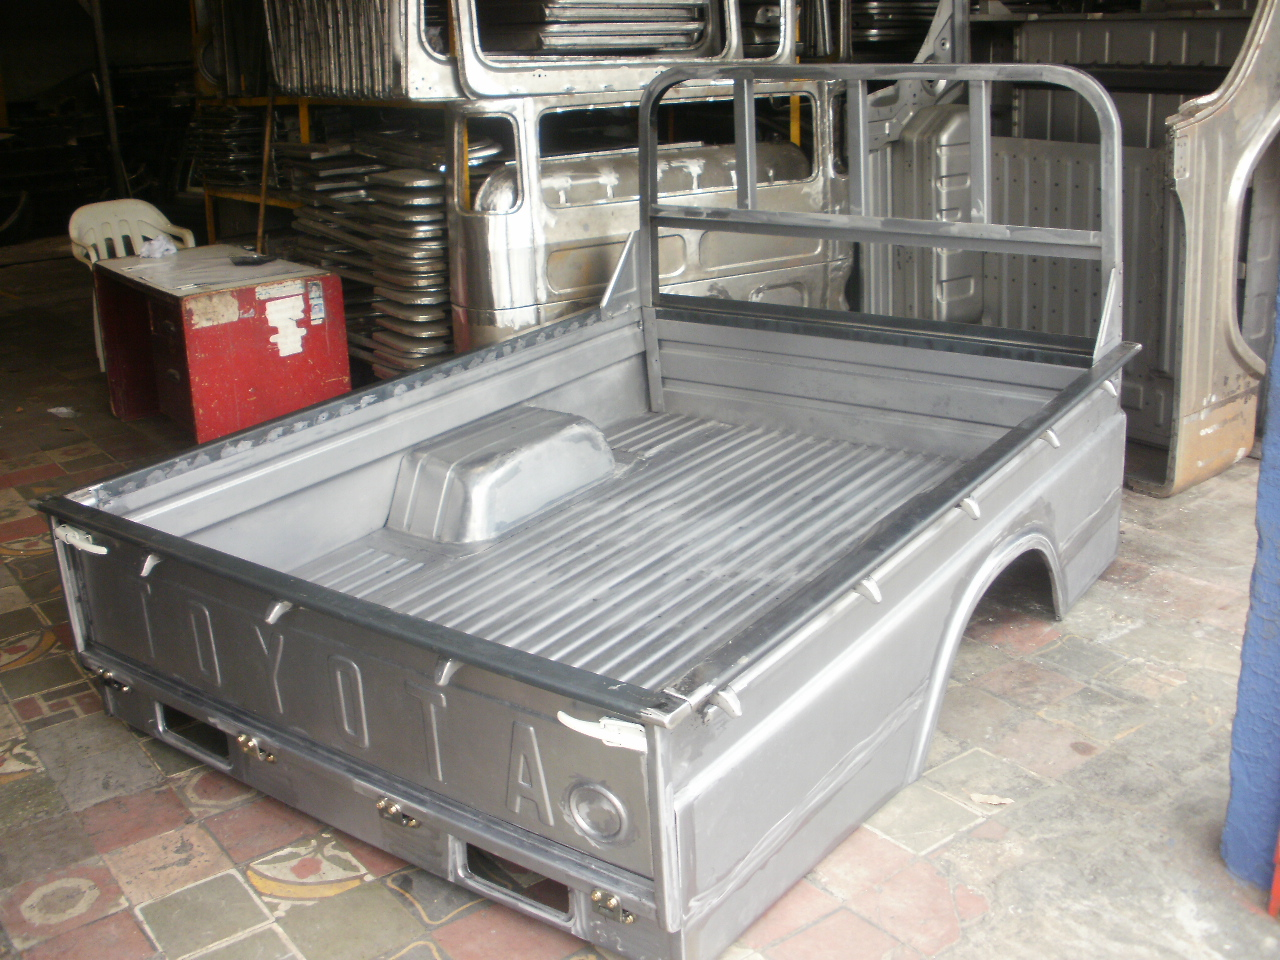 For Sale Fj45 Pickup Bed Potential Group Buy Ih8mud